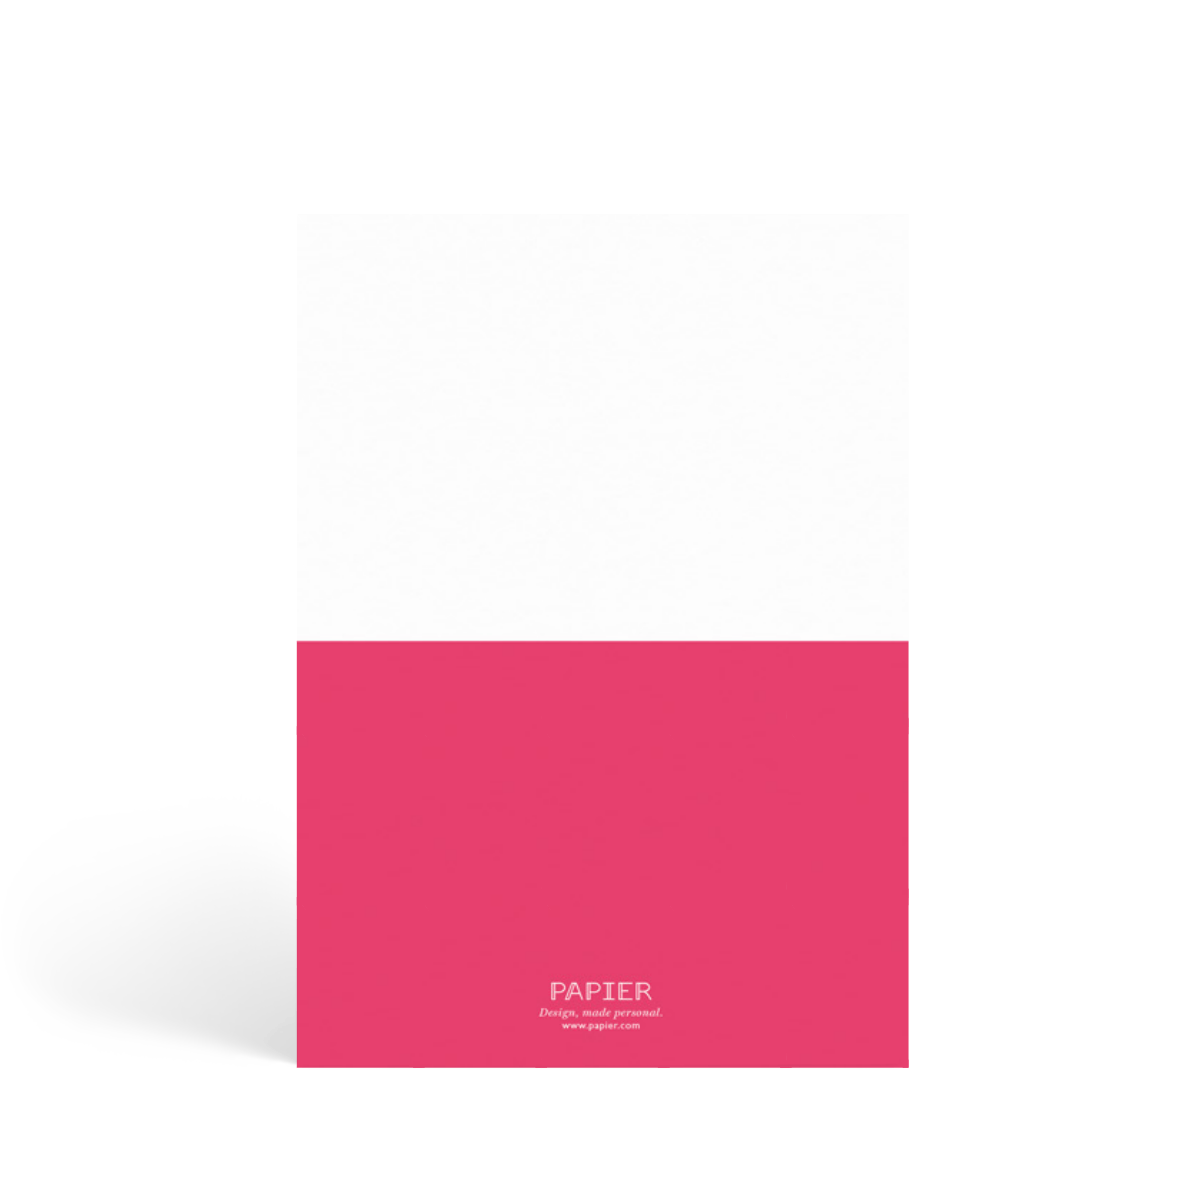 Https%3a%2f%2fwww.papier.com%2fproduct image%2f63998%2f5%2fdemi hot pink 15023 back 1548854680.png?ixlib=rb 1.1